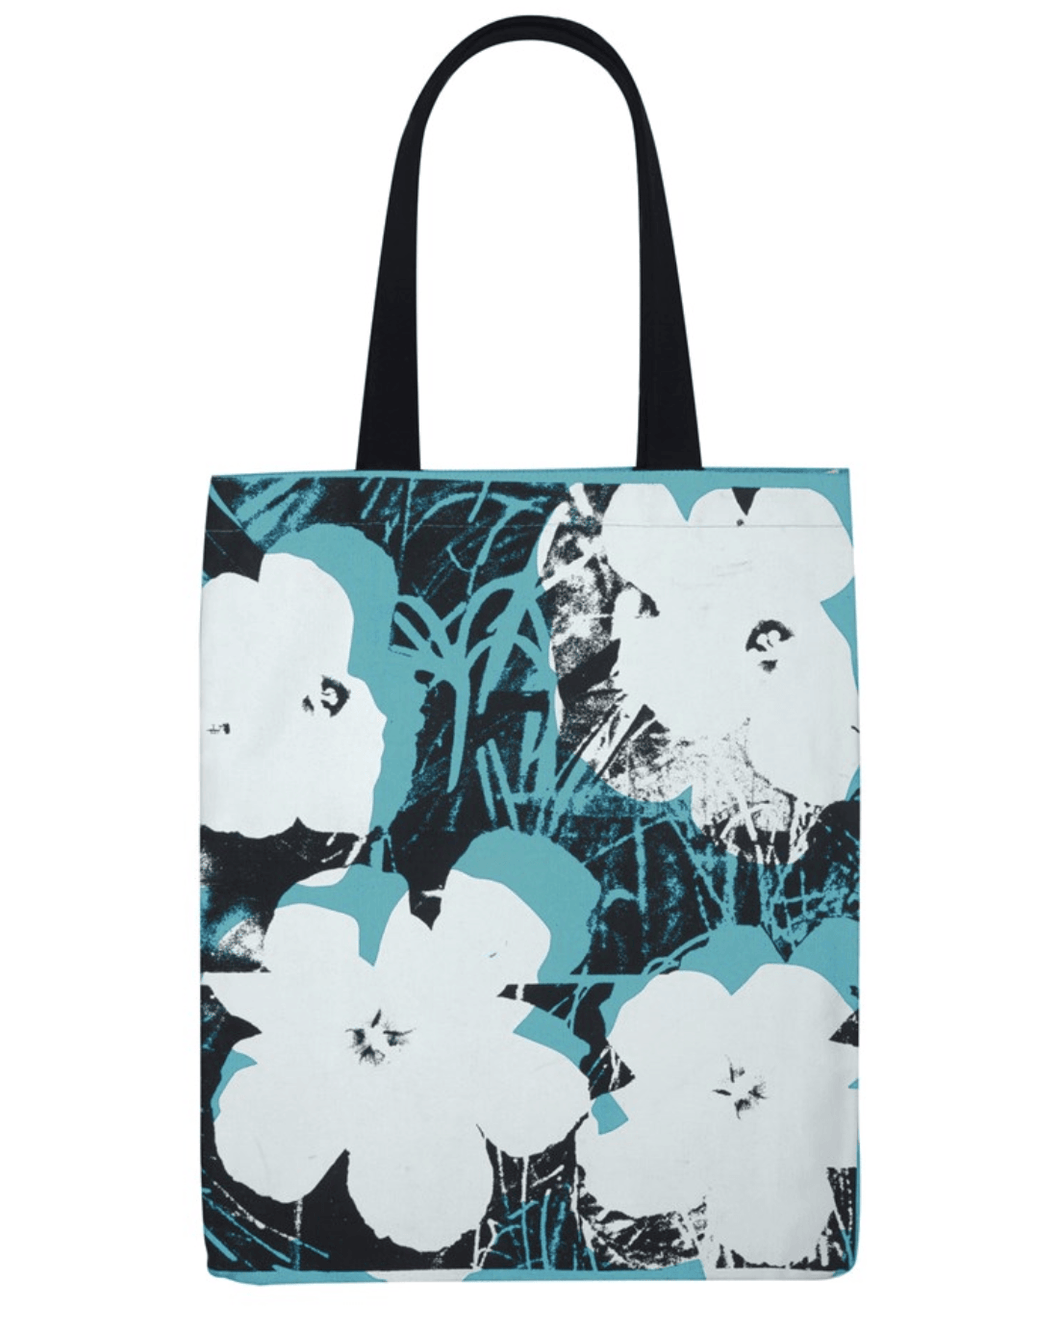 Andy Warhol Poppies Tote Bag Canvas - Adele Gilani Art Gallery